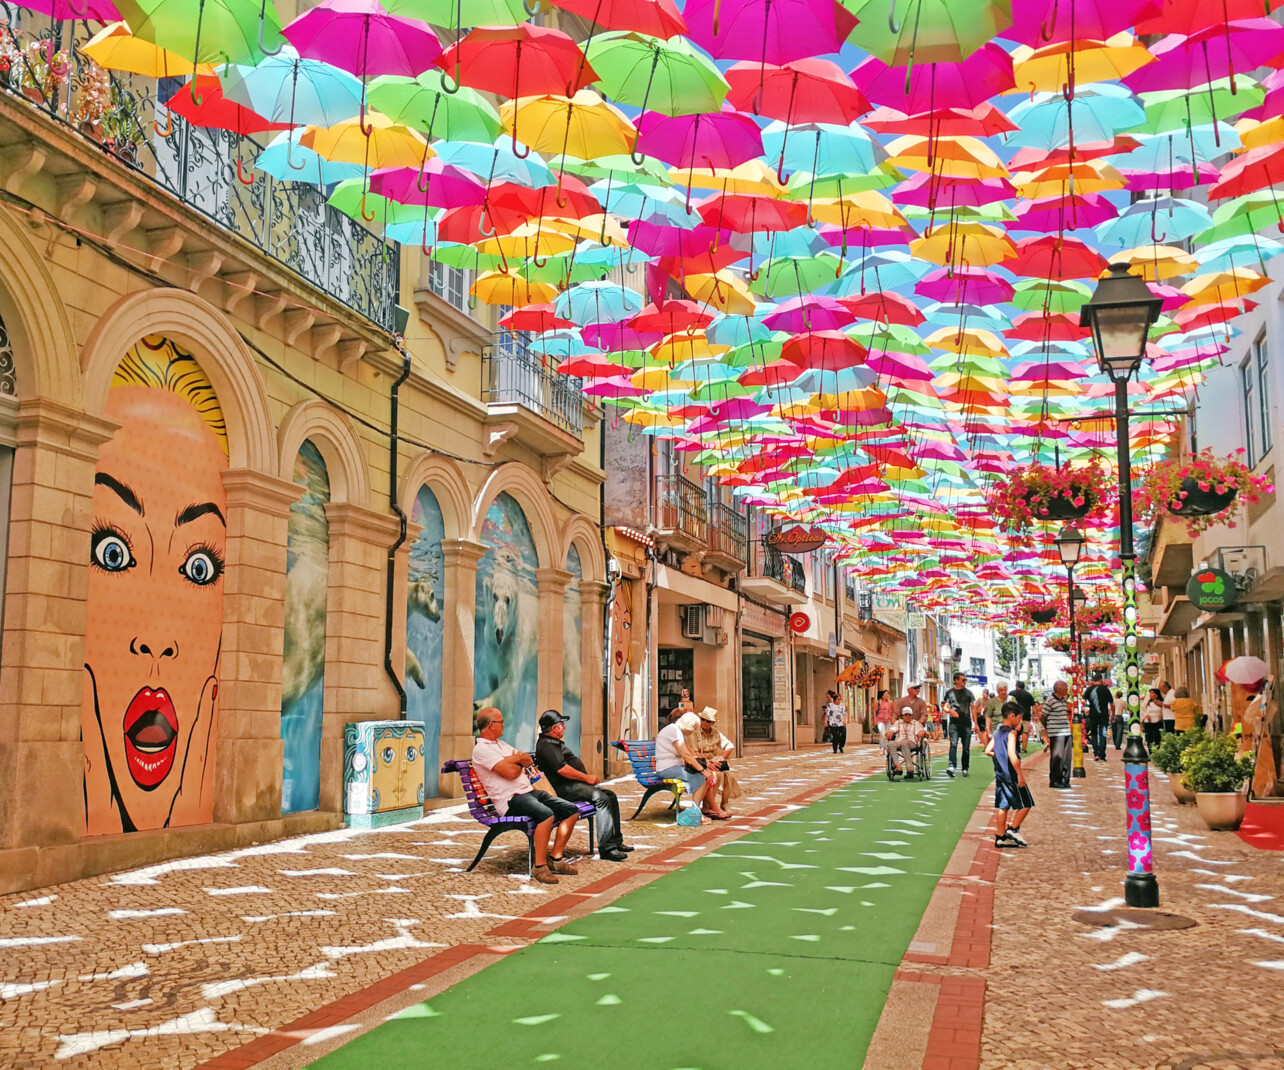 Águeda: Luís de Camões Street is one of the most beautiful in the world